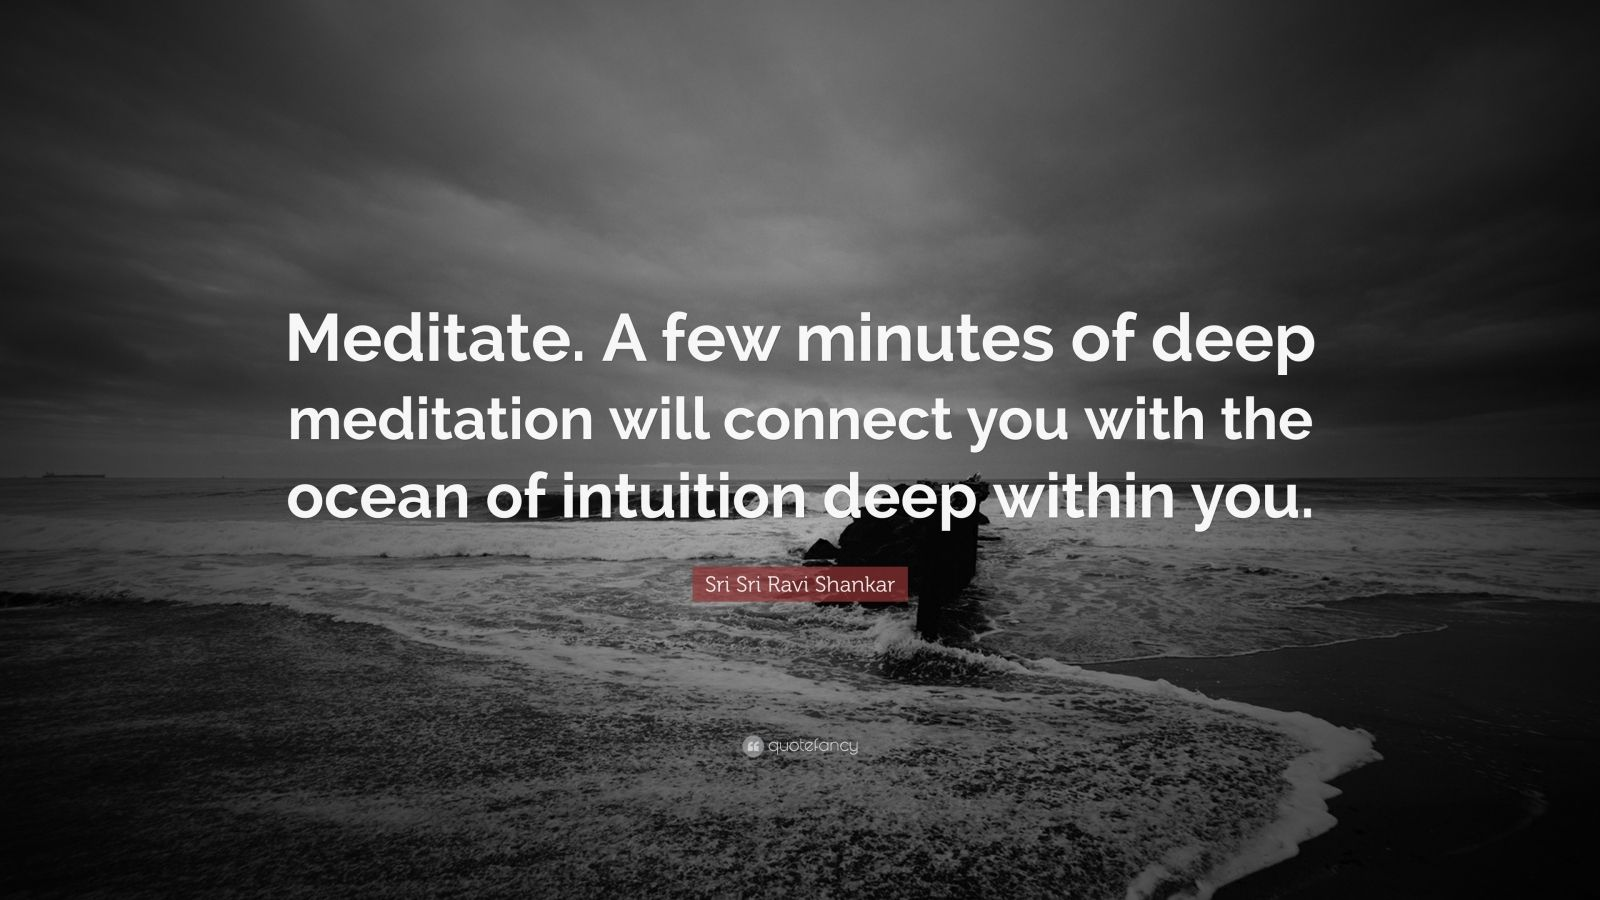 """Sri Sri Ravi Shankar Quote: """"Meditate. A few minutes of deep meditation will connect you with the ocean of intuition deep within you."""""""